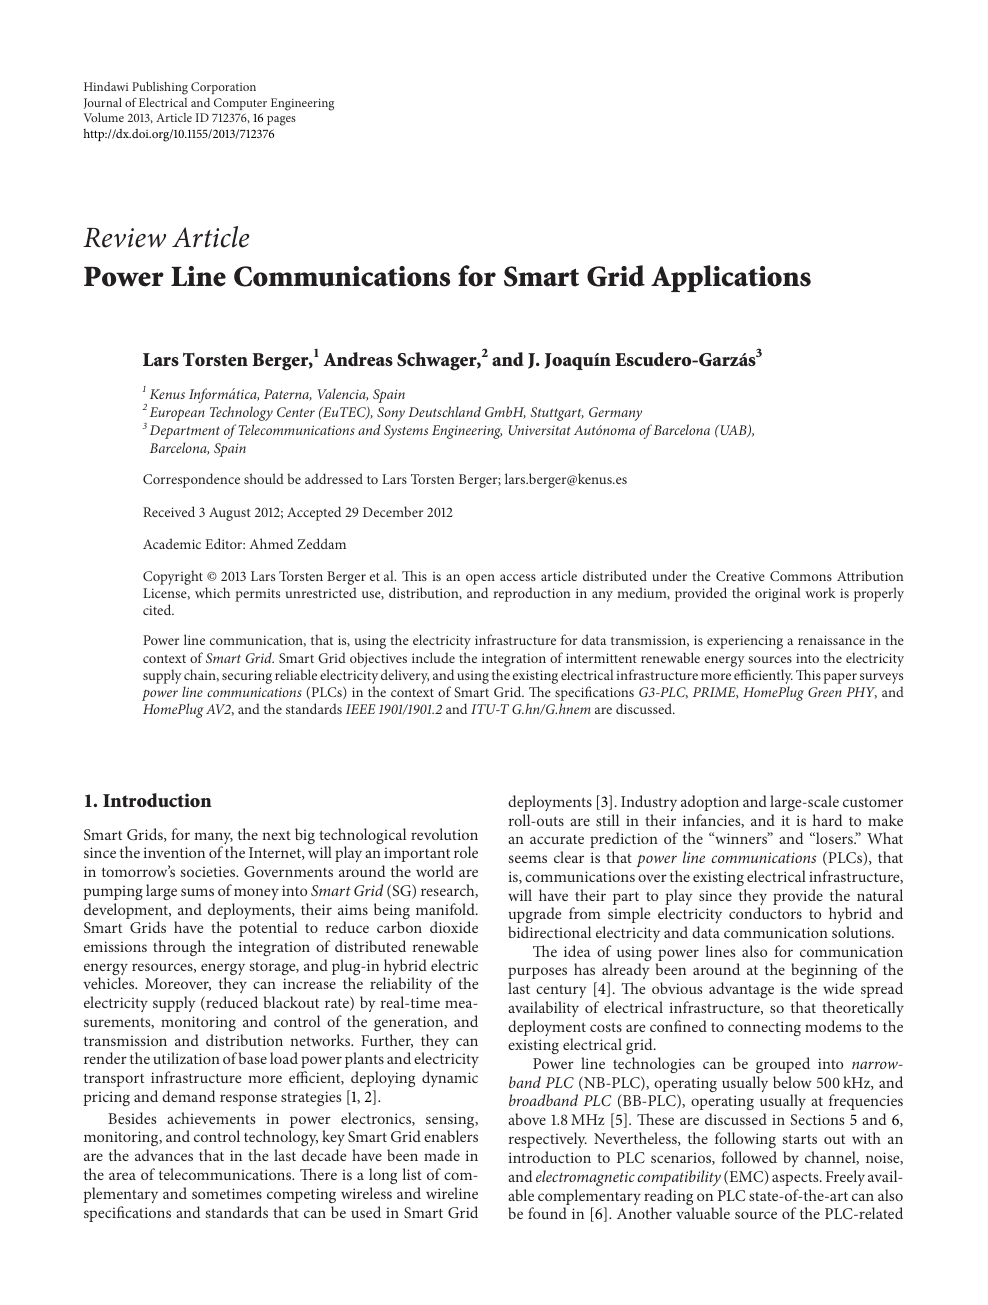 Power Line Communications for Smart Grid Applications – topic of